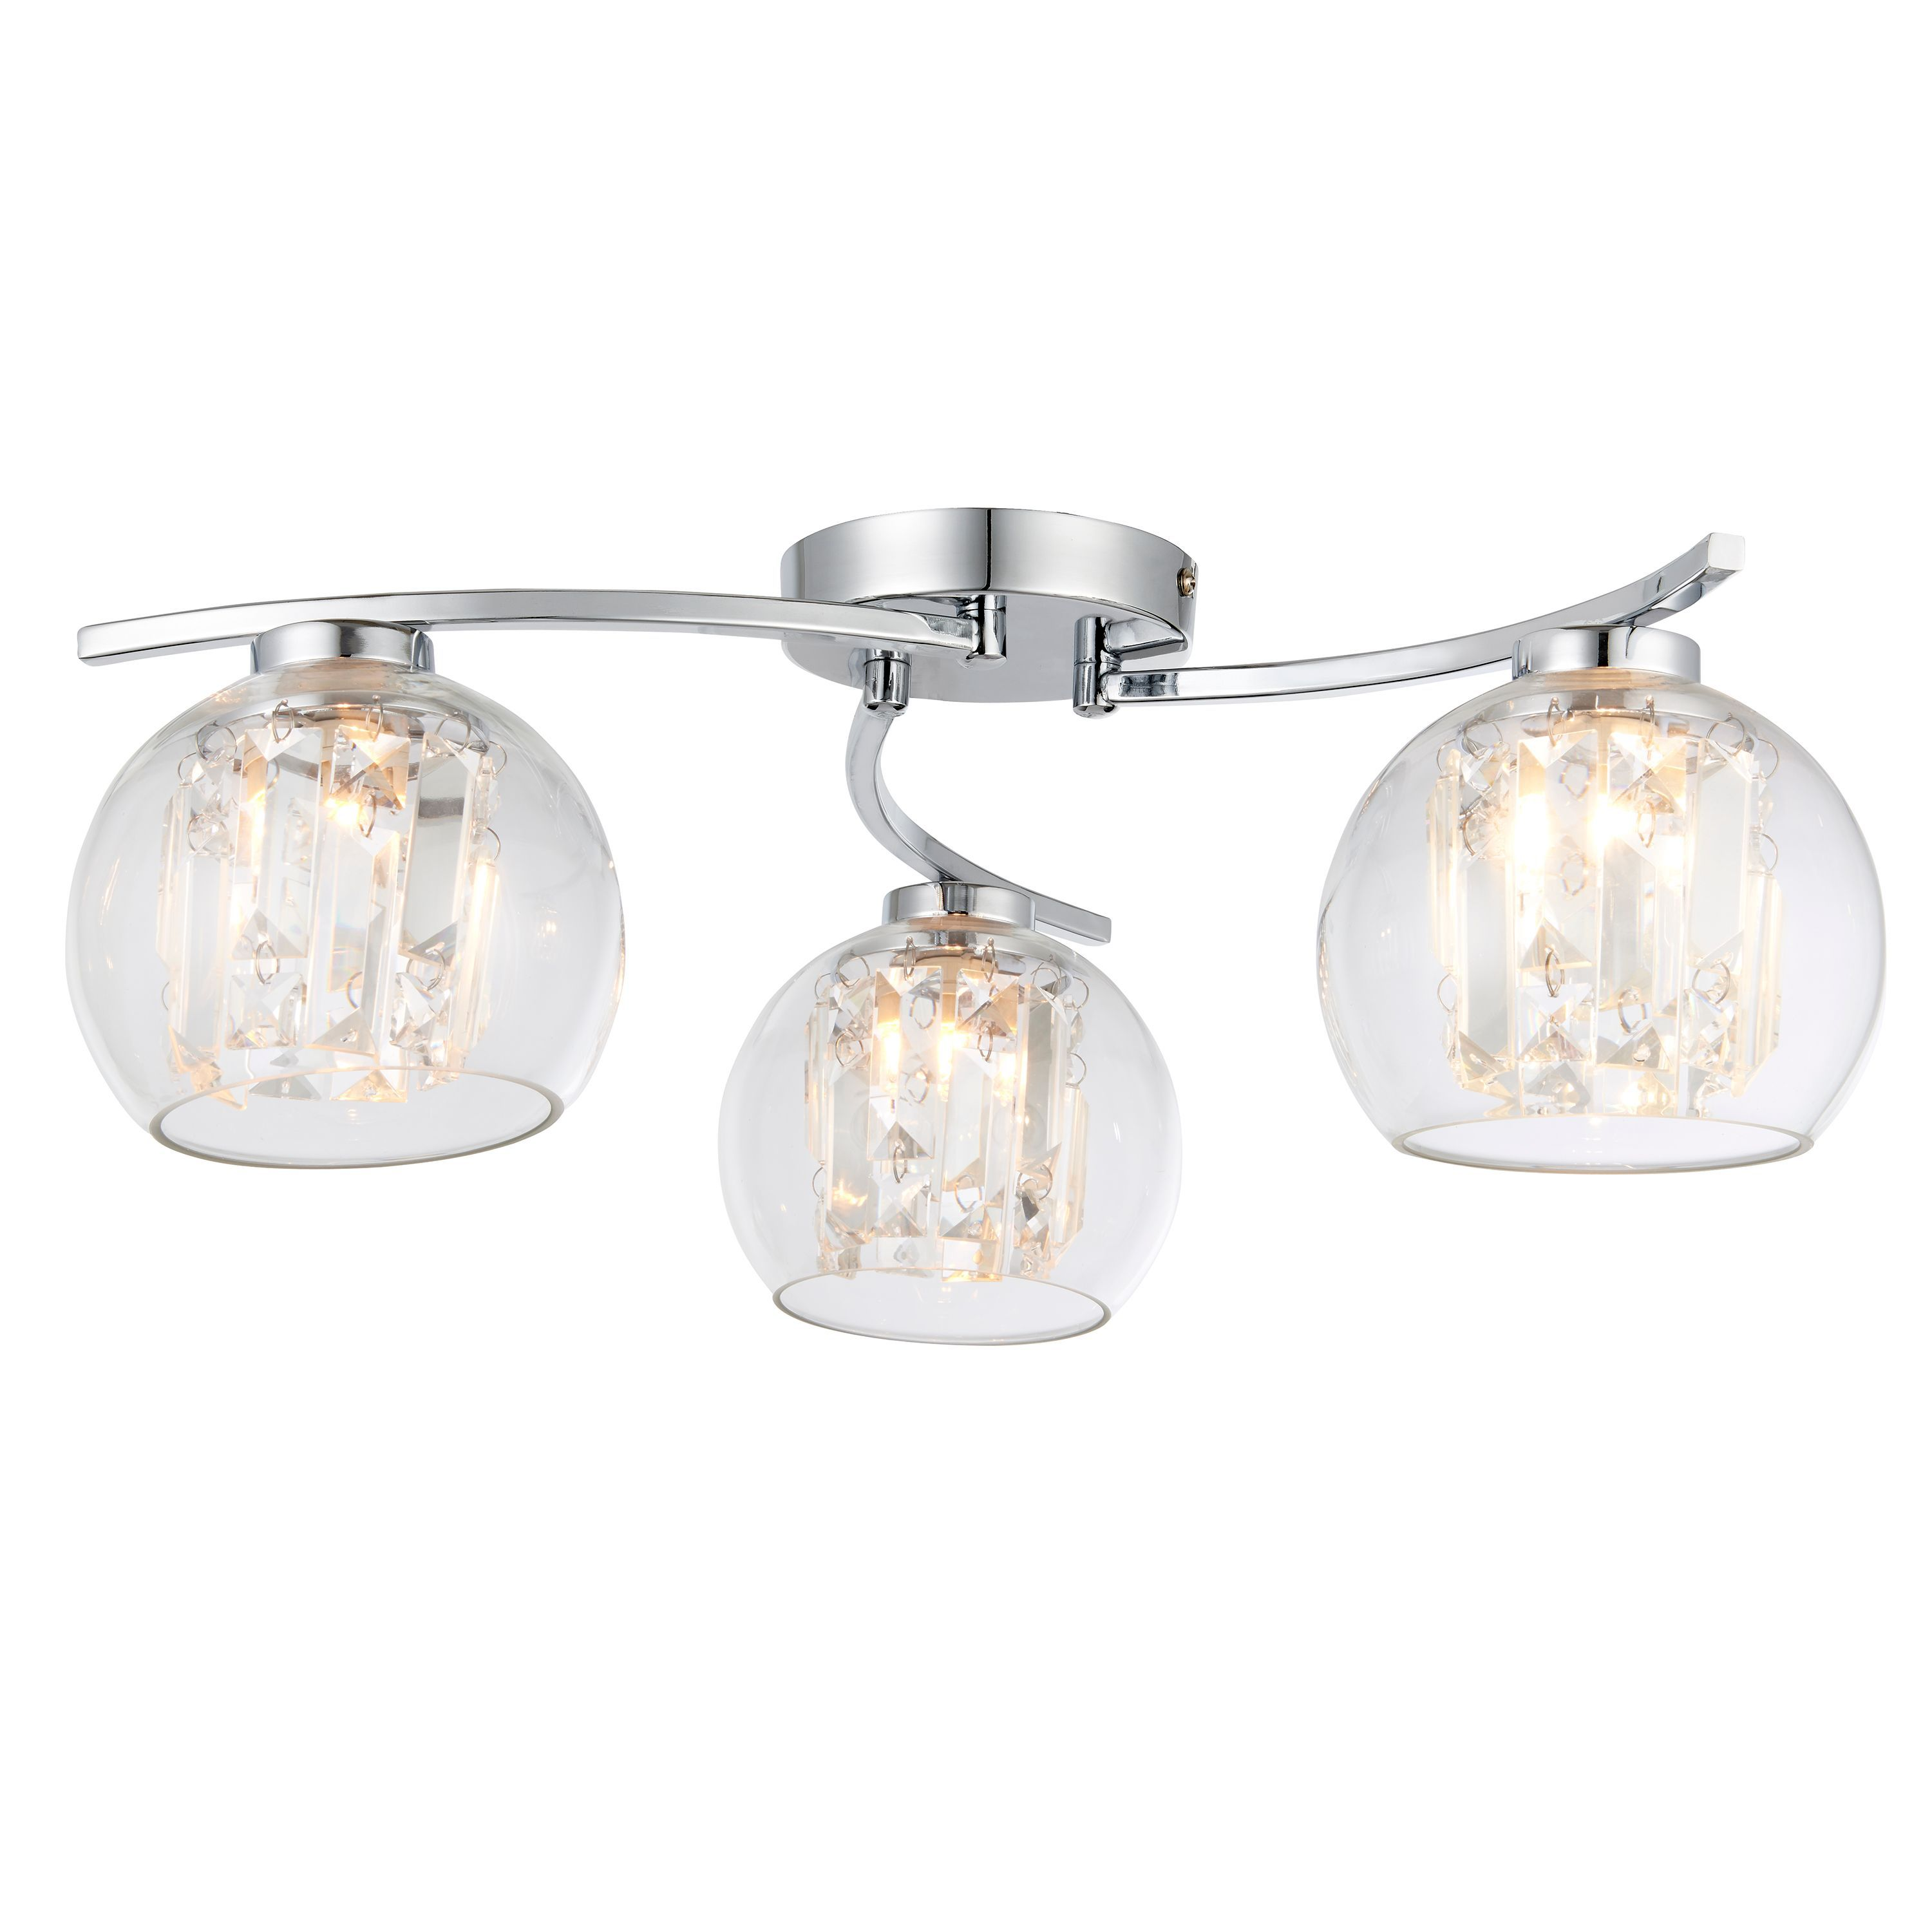 Chico glass sphere chrome effect 3 lamp ceiling light chico glass sphere chrome effect 3 lamp ceiling light departments diy at bq mozeypictures Gallery